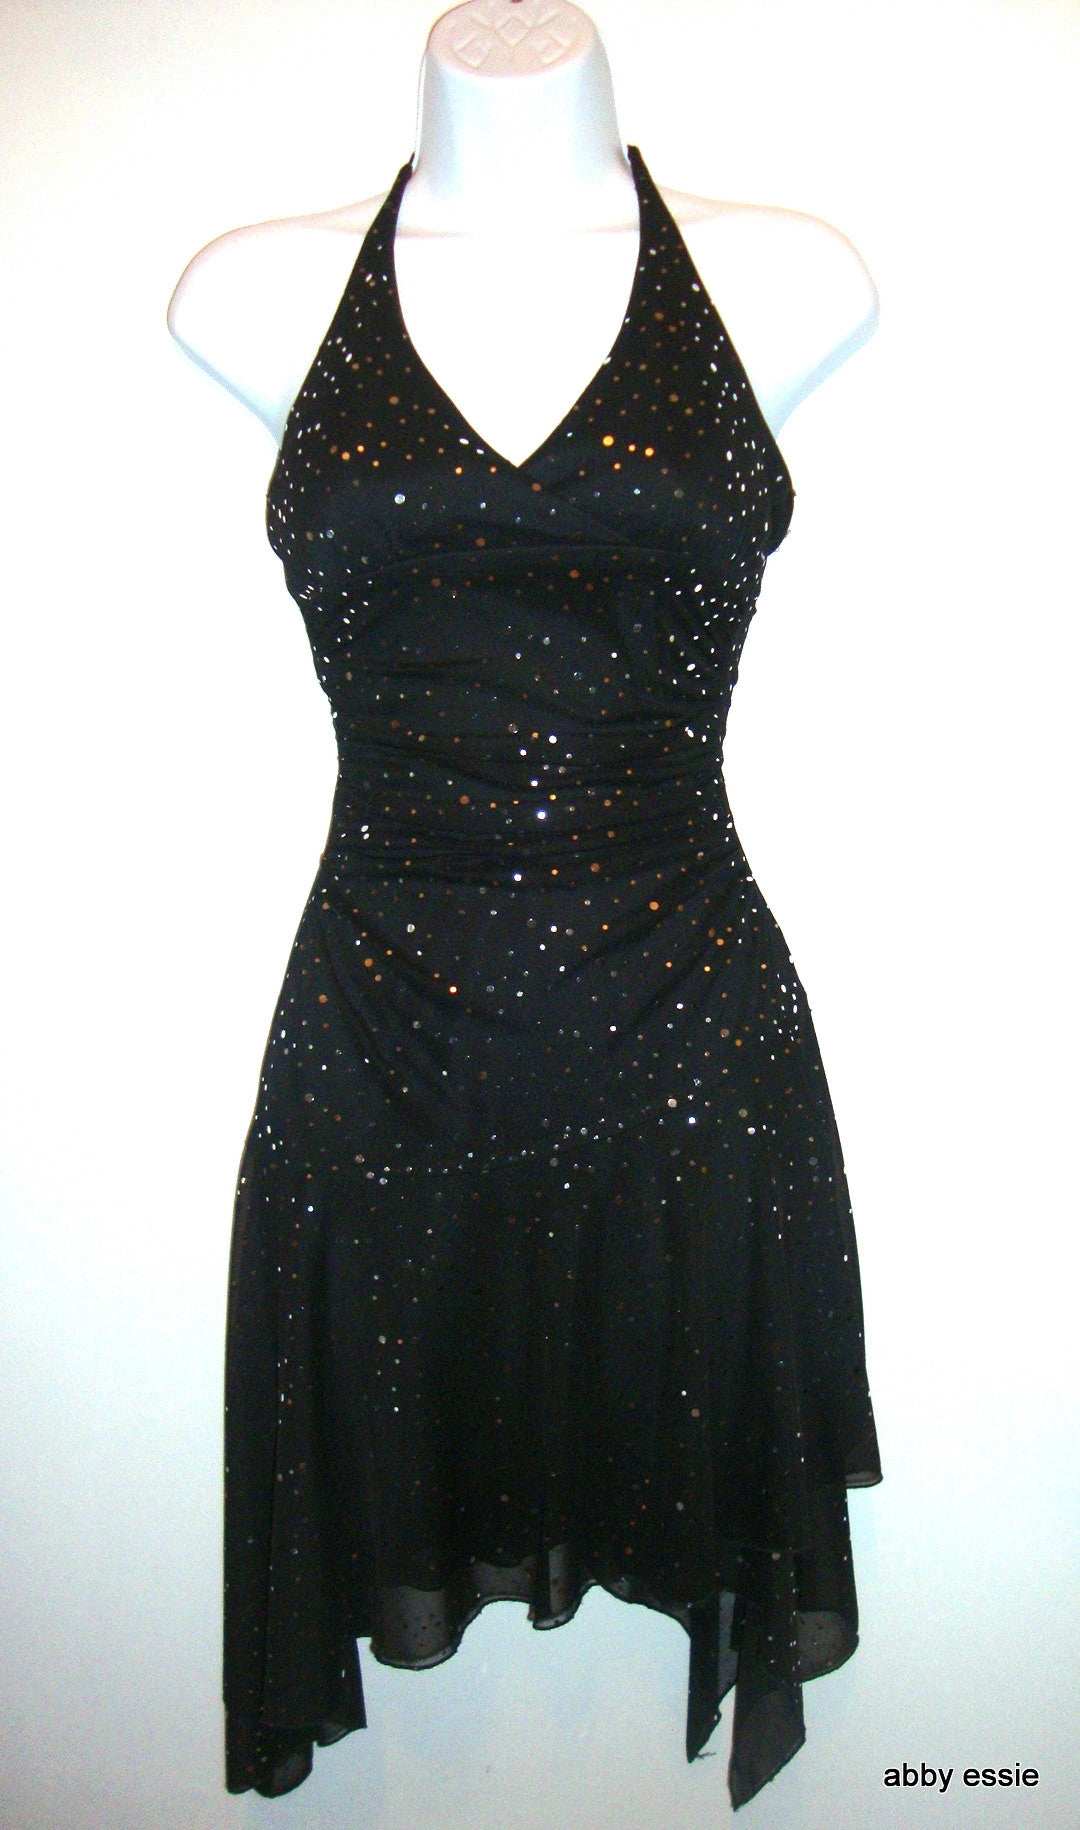 CITY TRIANGLES BLACK HALTER STRETCH DRESS SILVER DOTS DASHES JUNIOR DRESS SMALL